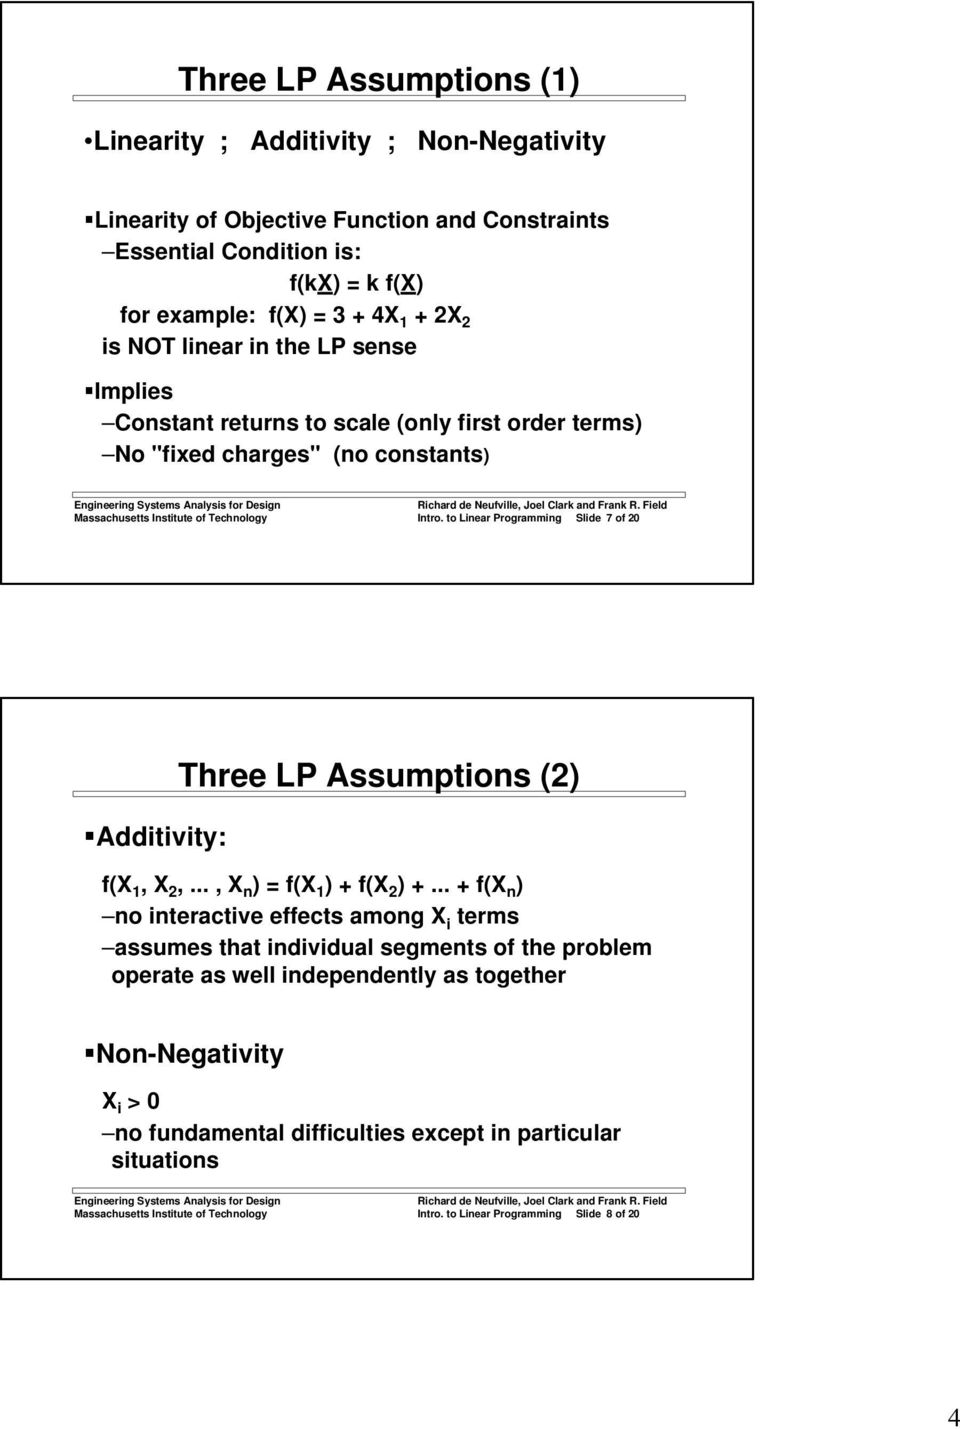 to Linear Programming Slide 7 of 20 Additivity: Three LP Assumptions (2) f(x 1, X 2,..., X n ) = f(x 1 ) + f(x 2 ) +.